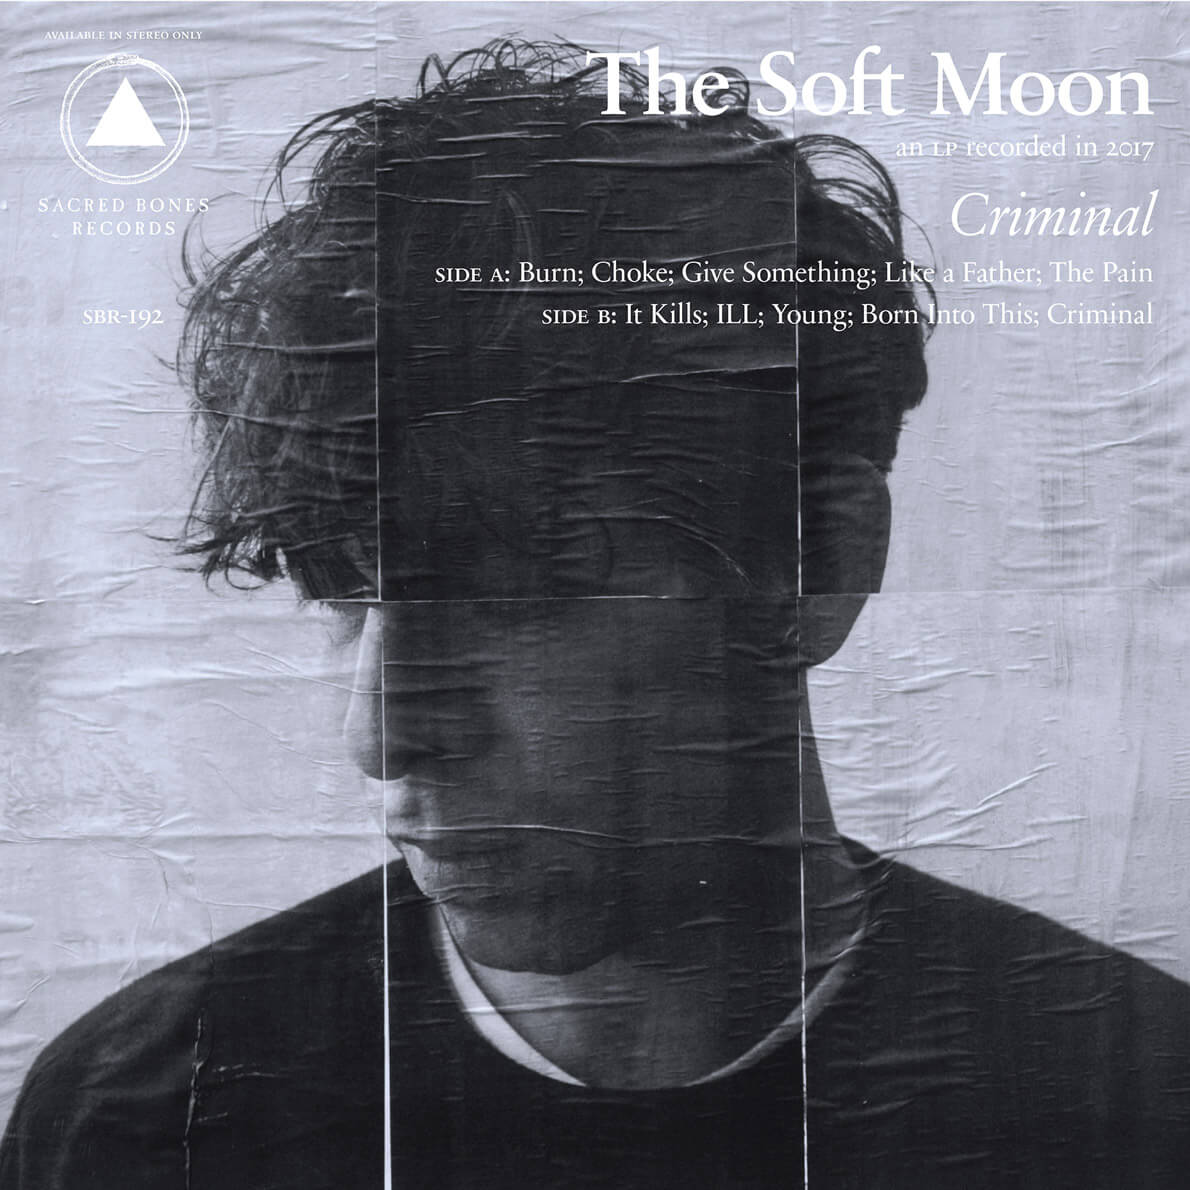 The soft moon, criminal